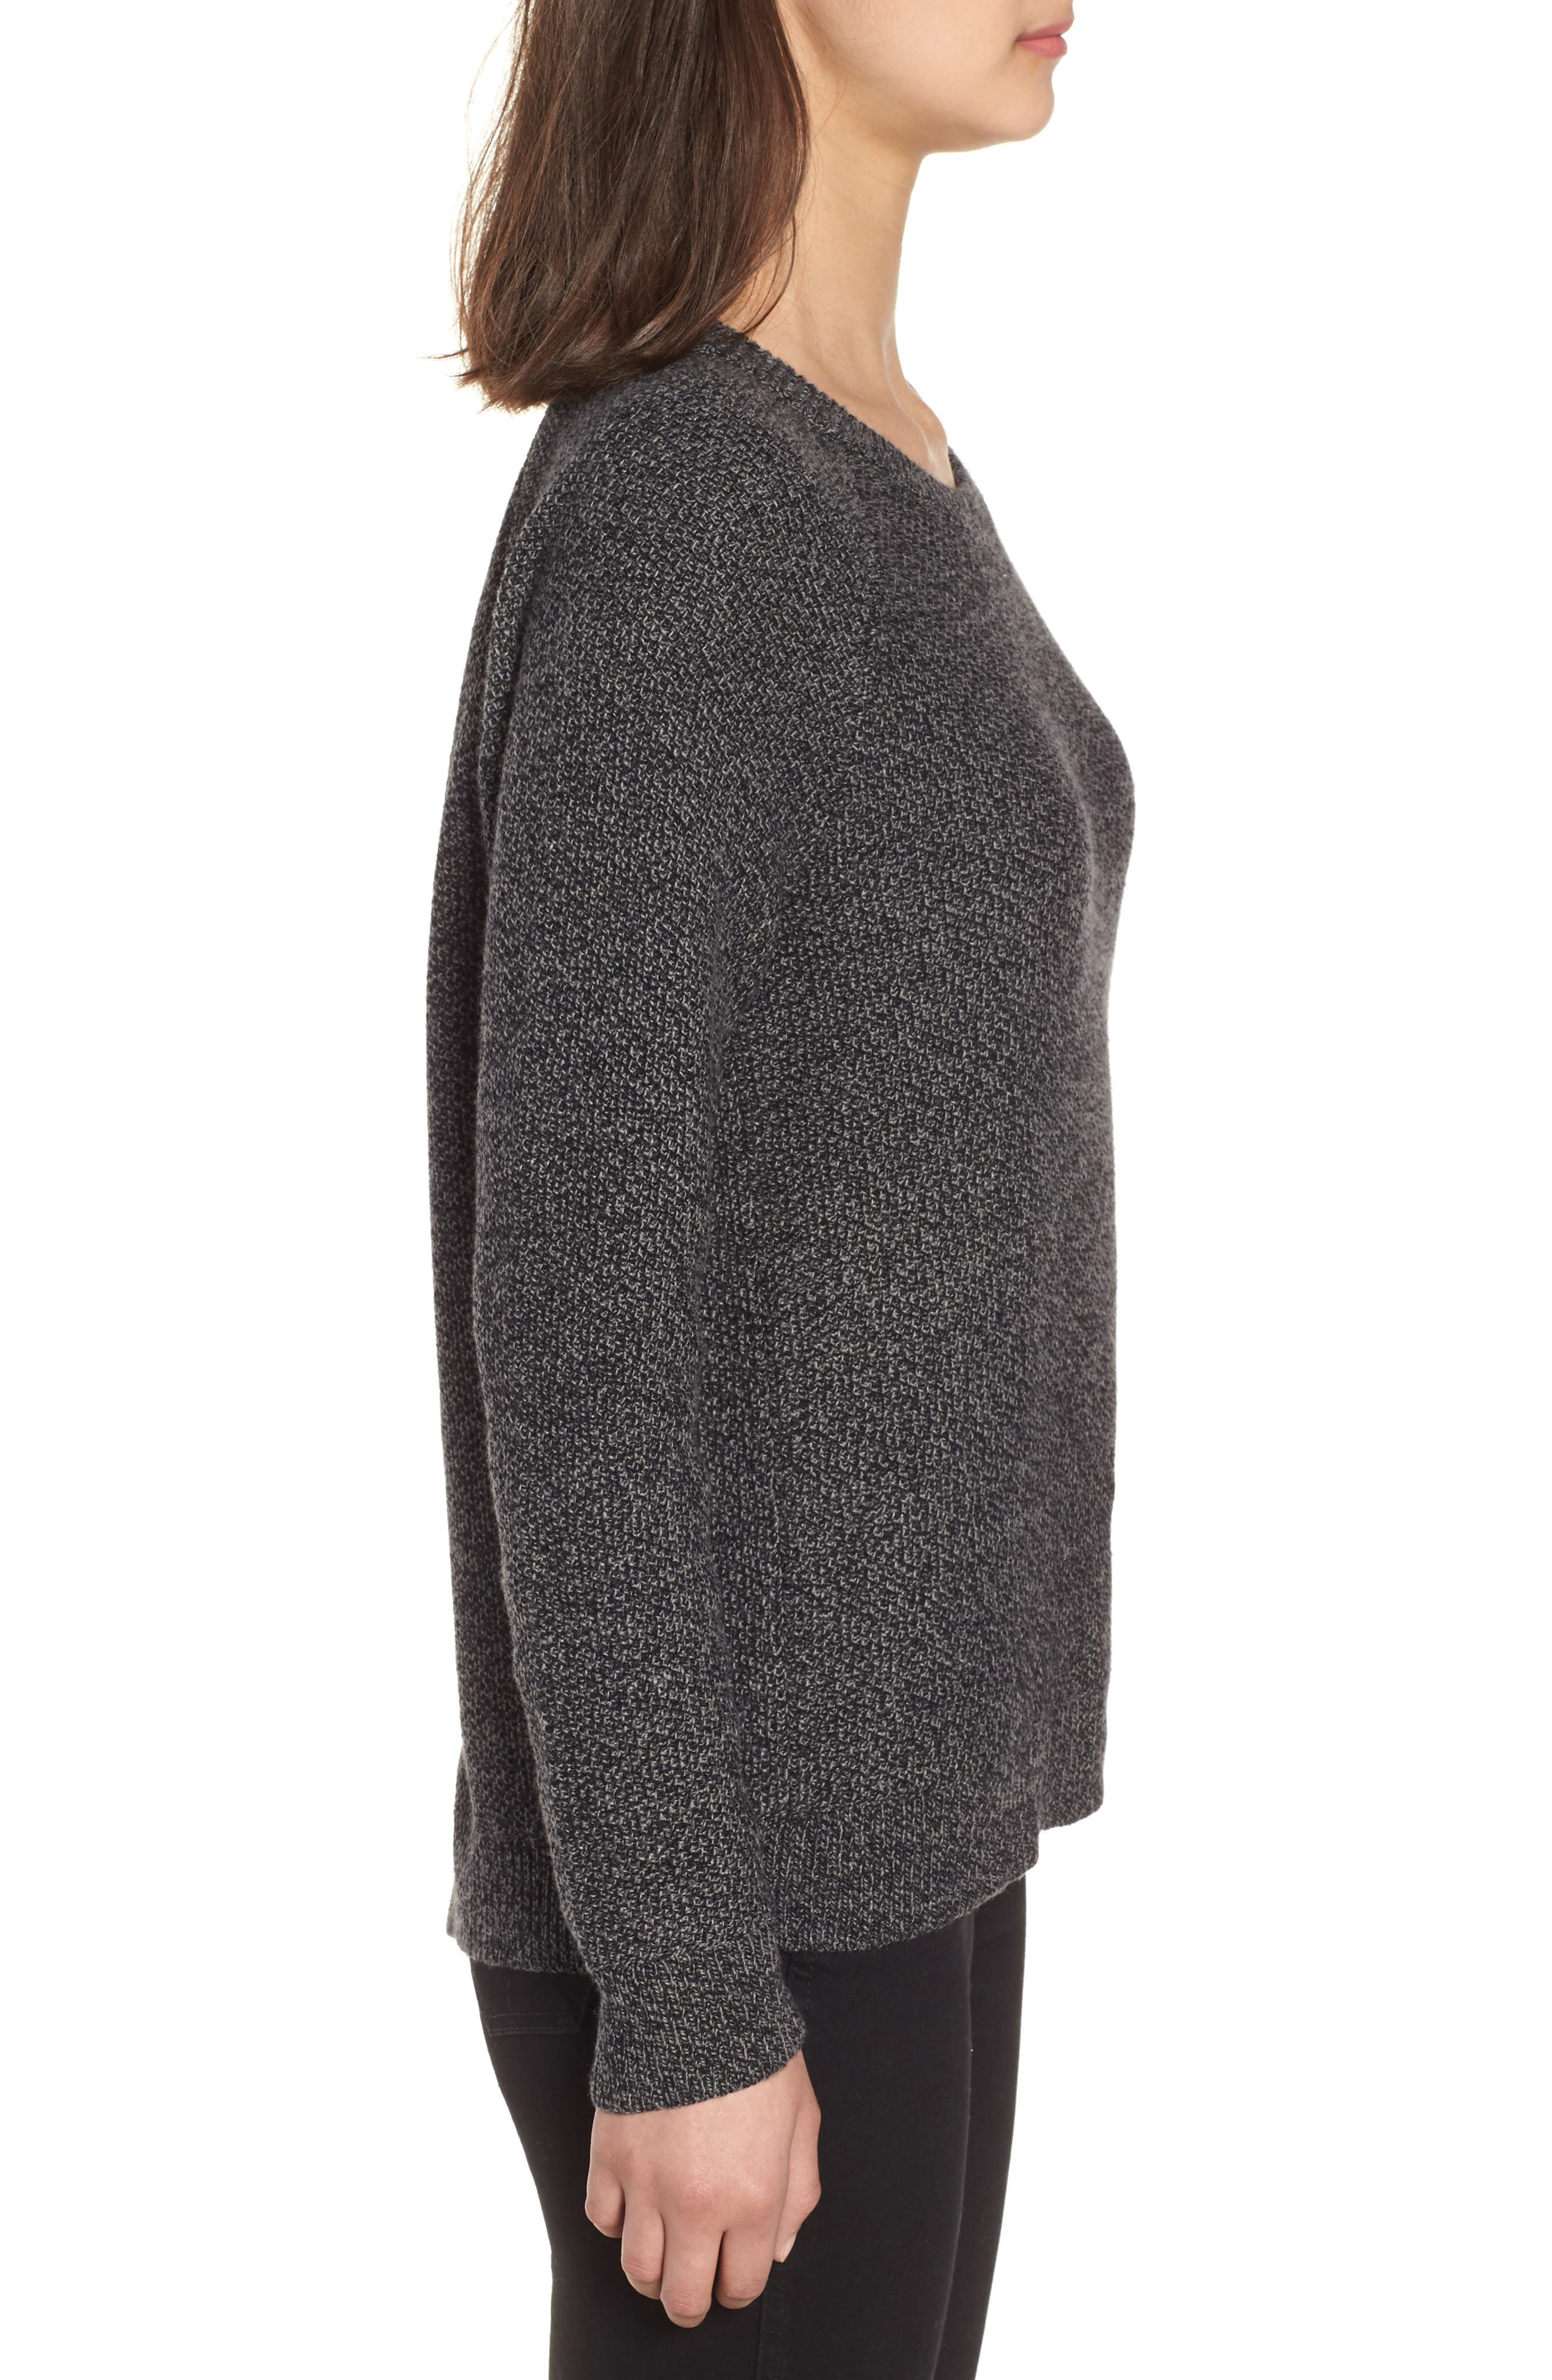 Province Cross Back Knit Pullover,                             Alternate thumbnail 3, color,                             020